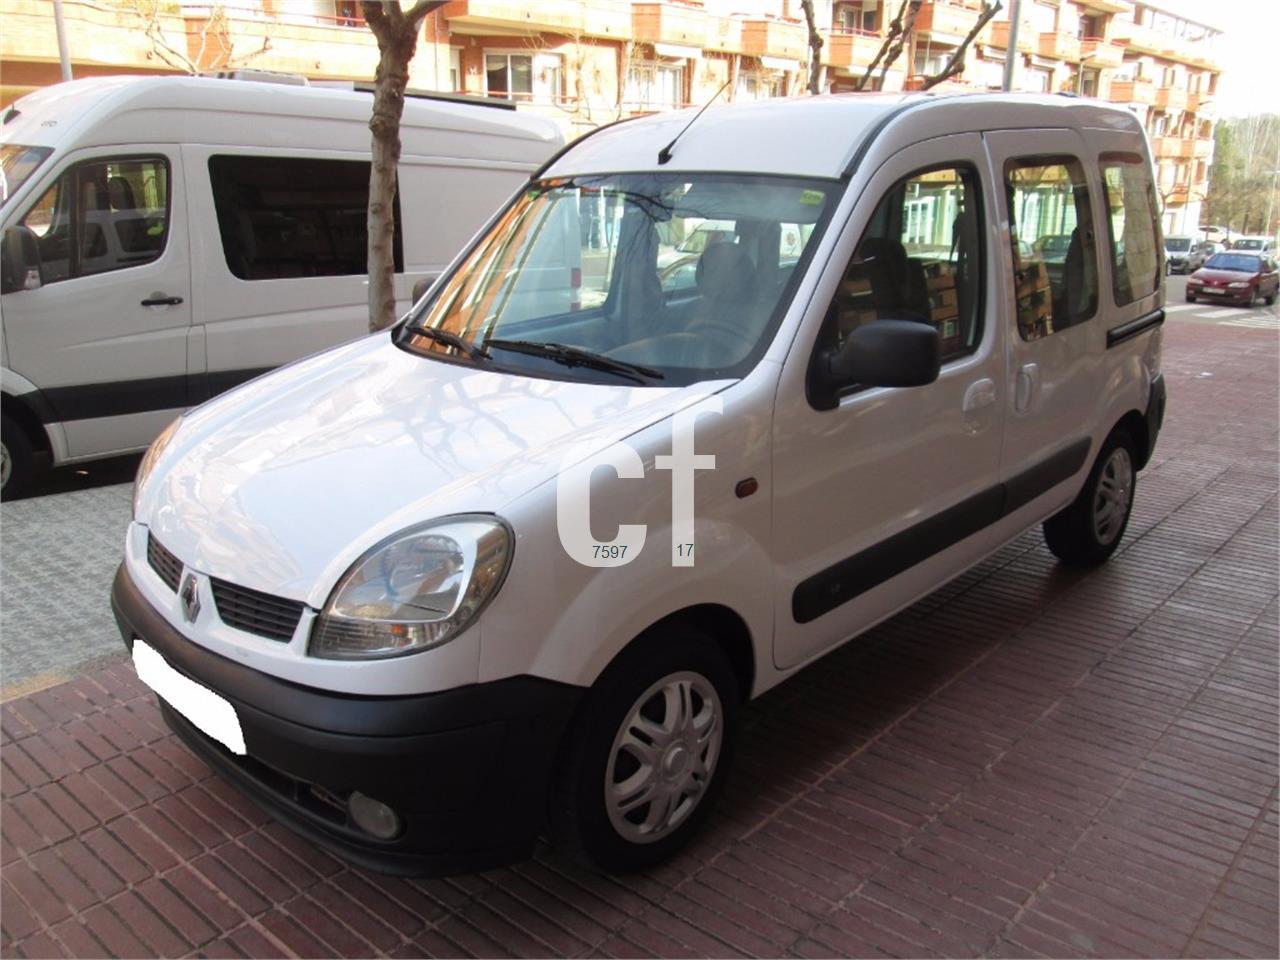 kangoo d occasion le bon coin voiture kangoo d occasion renault kangoo annonces gratuites auto. Black Bedroom Furniture Sets. Home Design Ideas